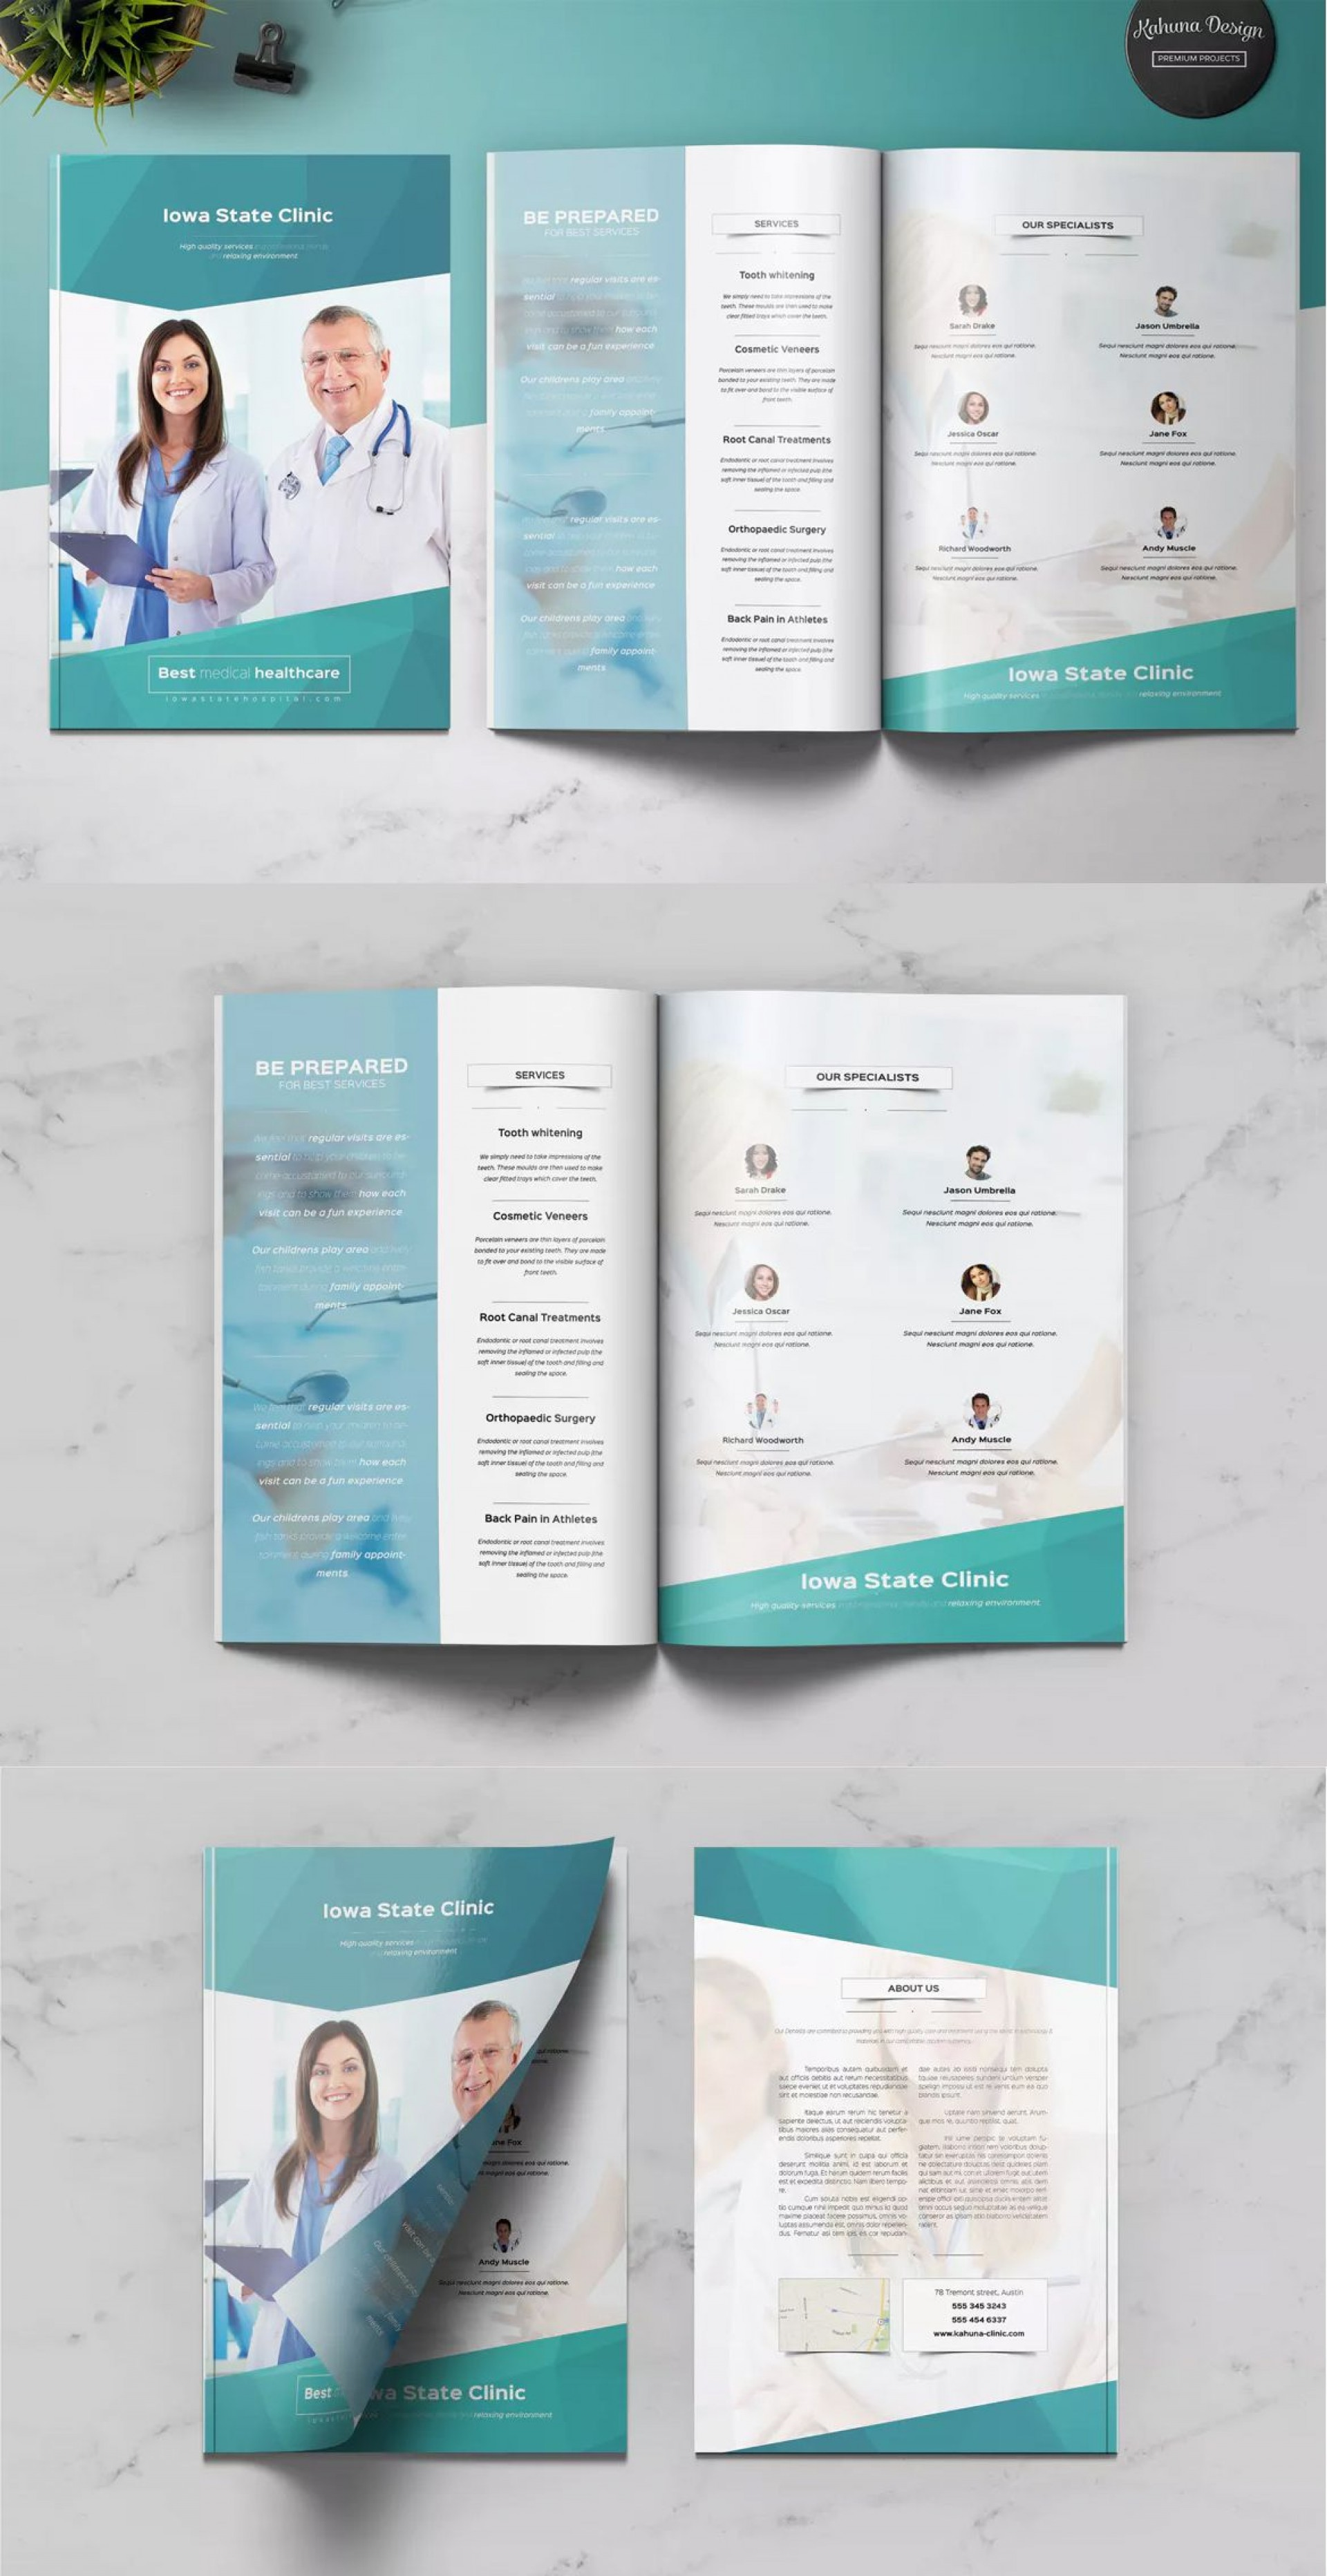 005 Archaicawful Indesign A4 Brochure Template Free Download High Definition 1920